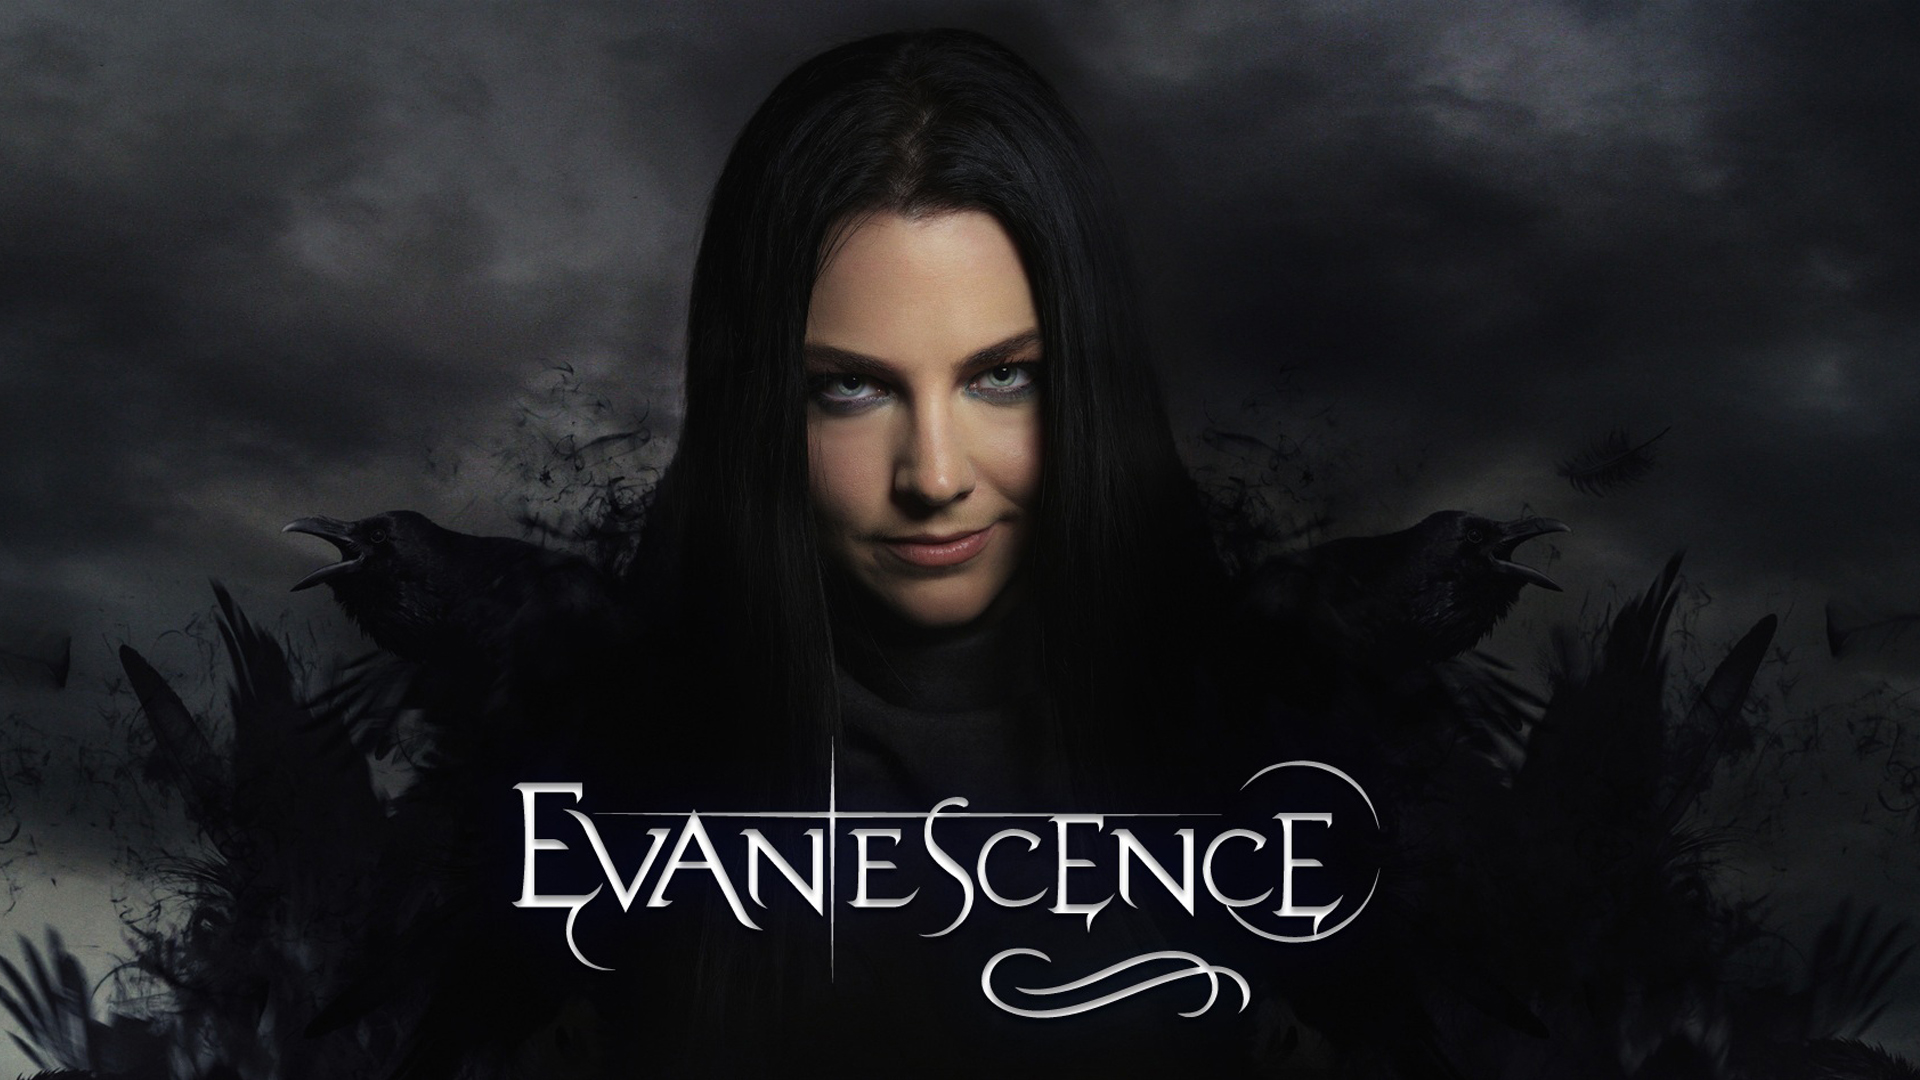 evanescence wallpaper full hd